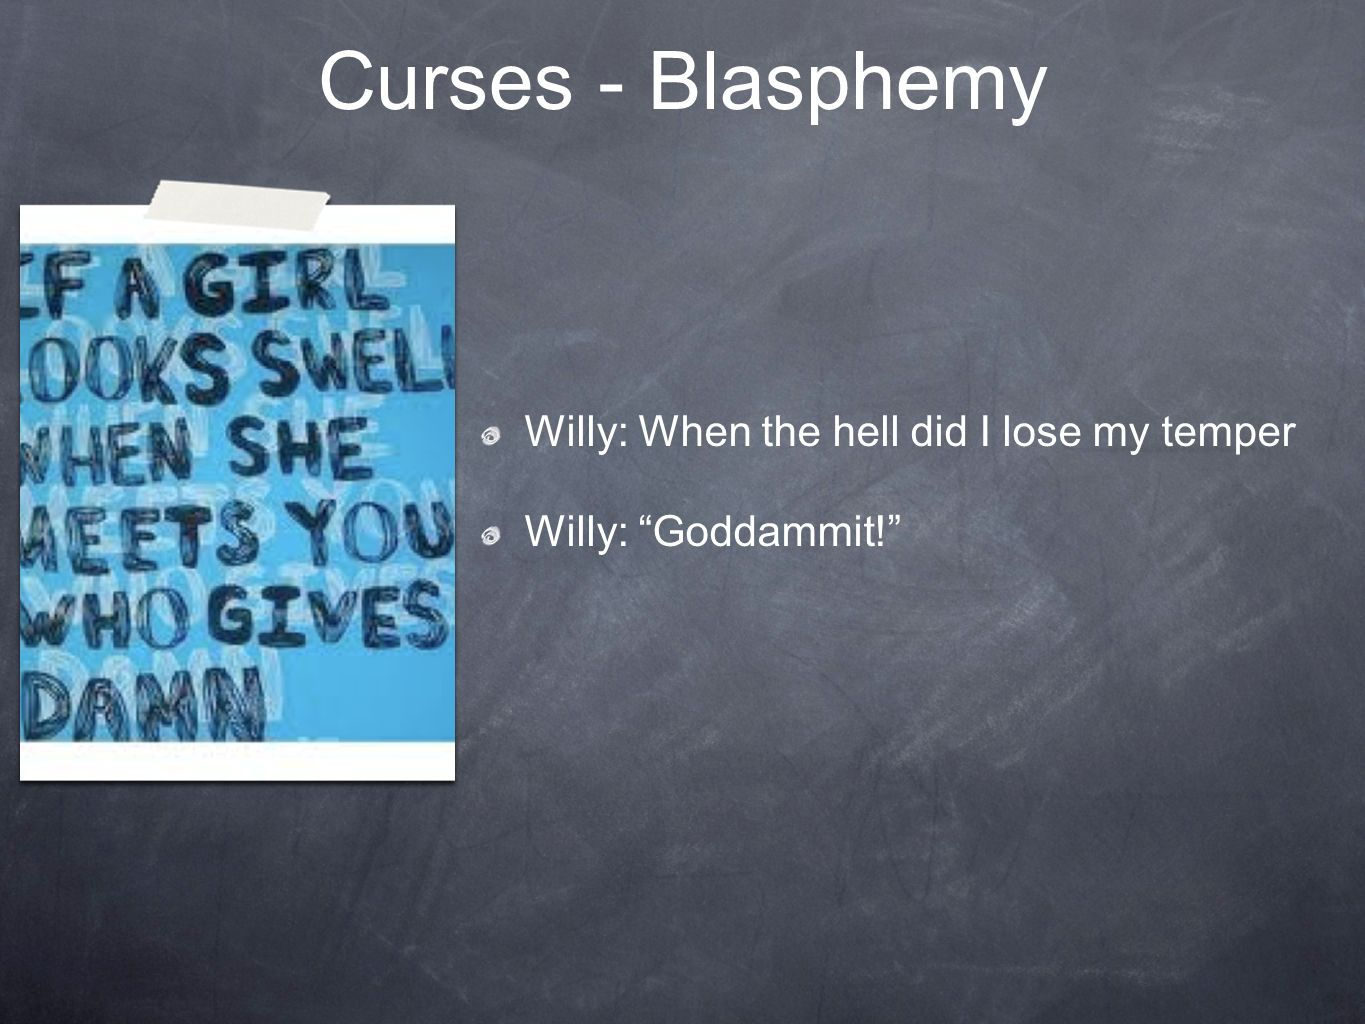 Curses - Blasphemy Willy: When the hell did I lose my temper